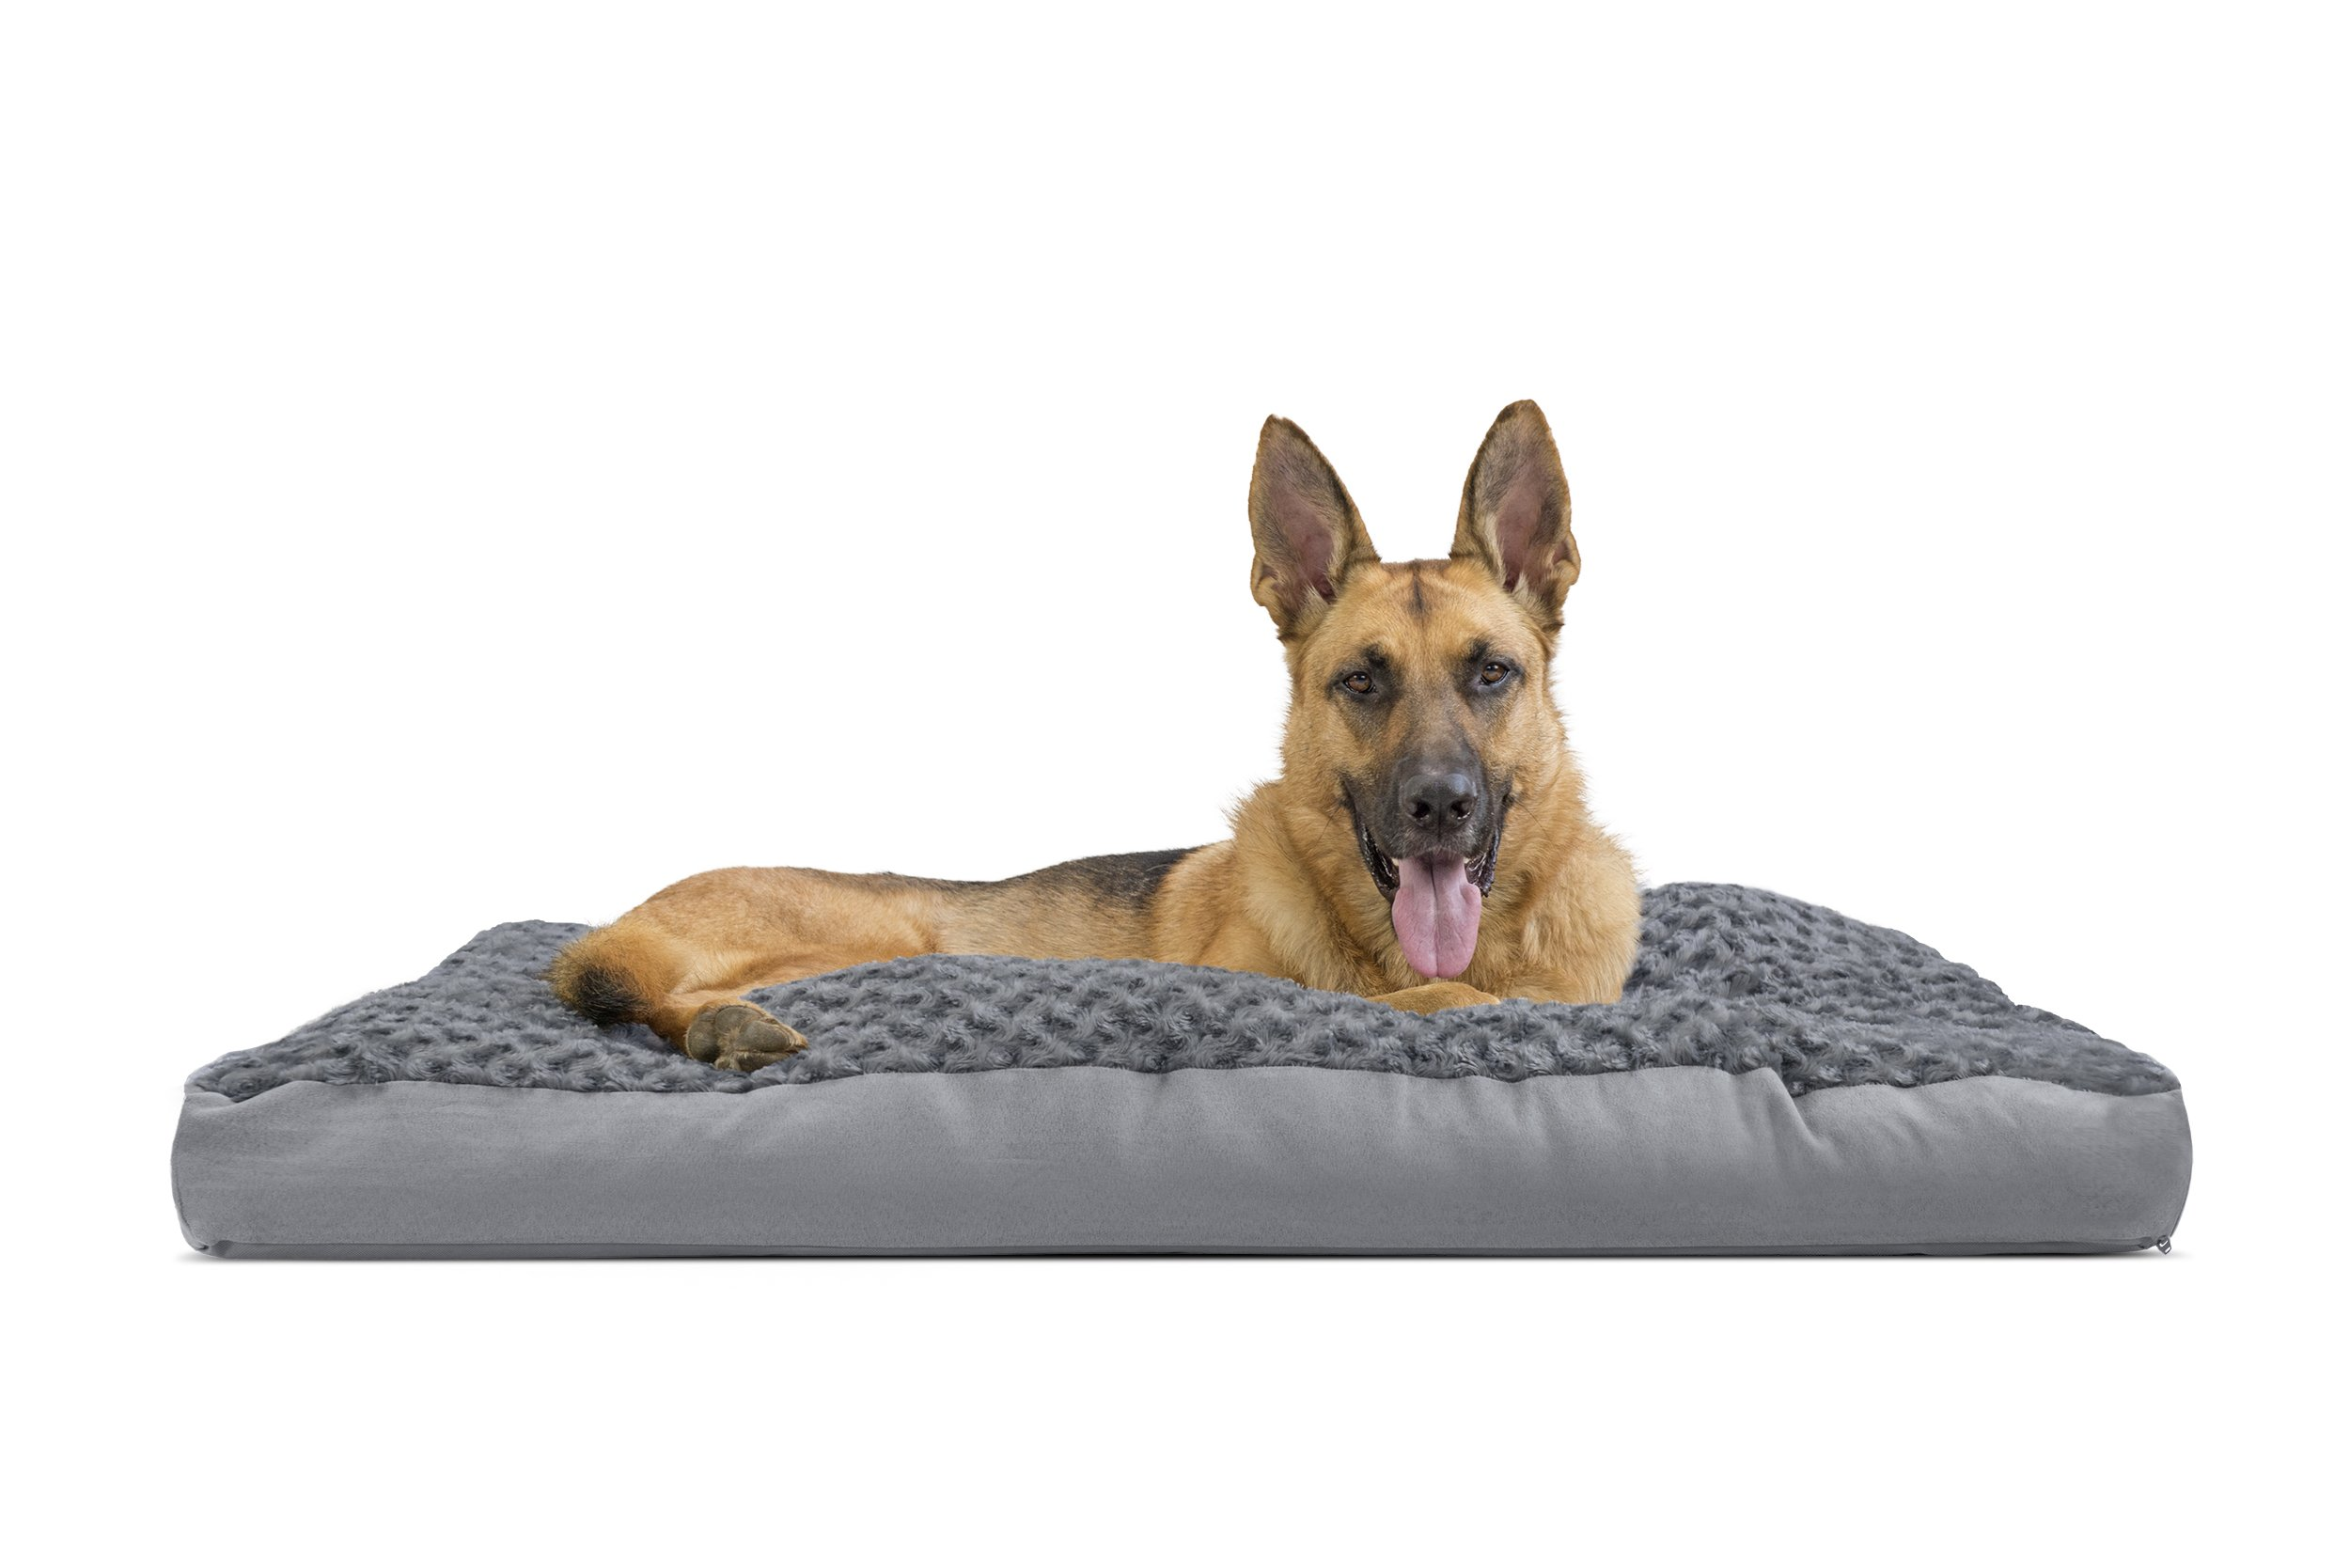 FurHaven Pet Dog Bed | Deluxe Ultra Plush Pillow Pet Bed for Dogs & Cats, Gray, Jumbo